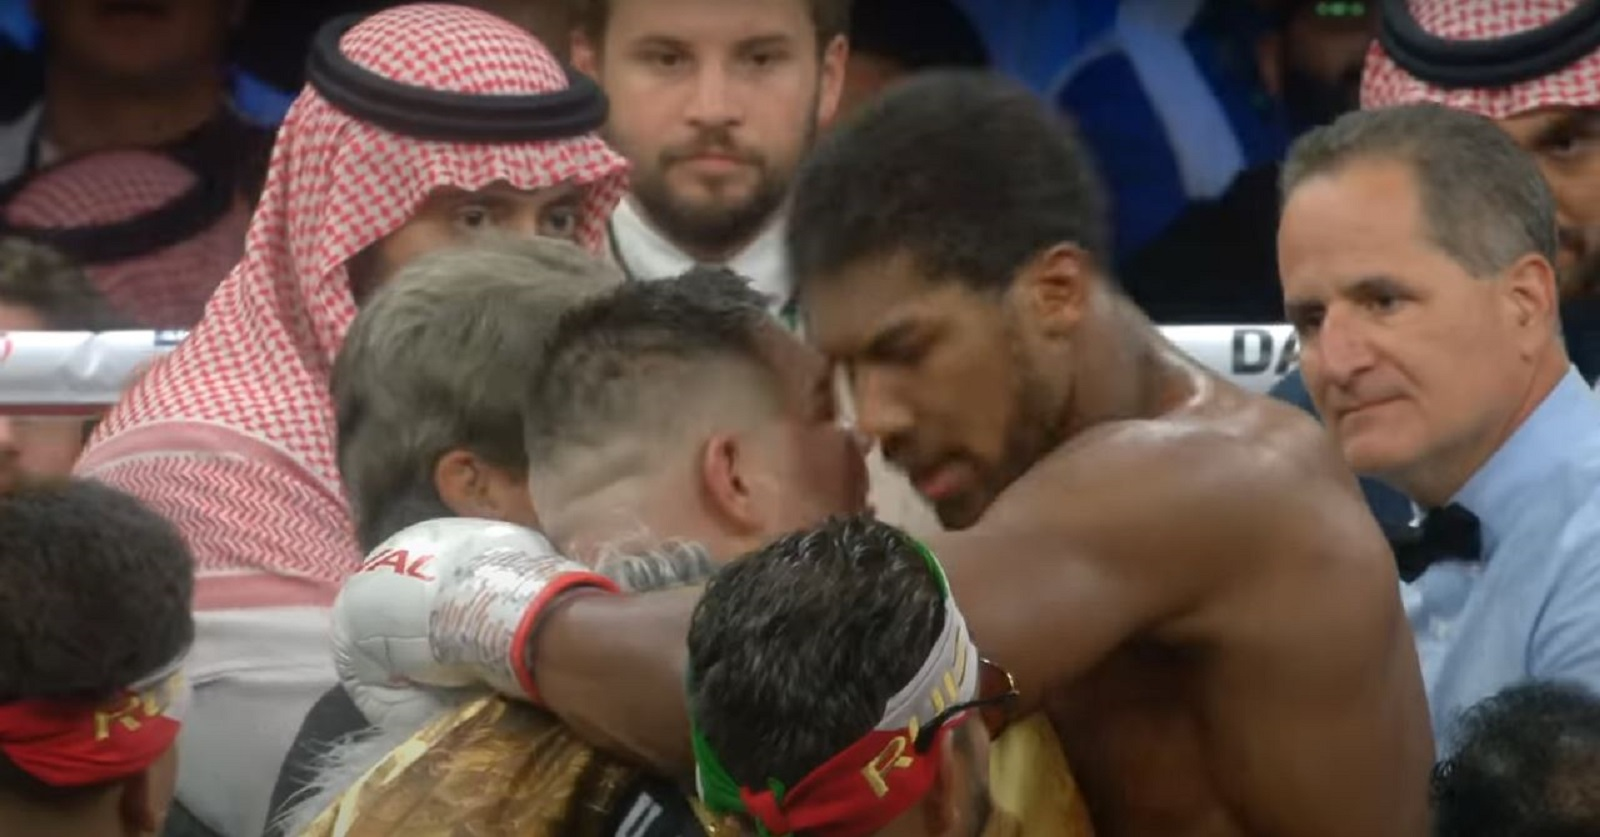 Boxing Trainer Spot On About Brutal Conflict Between Israel and Palestine